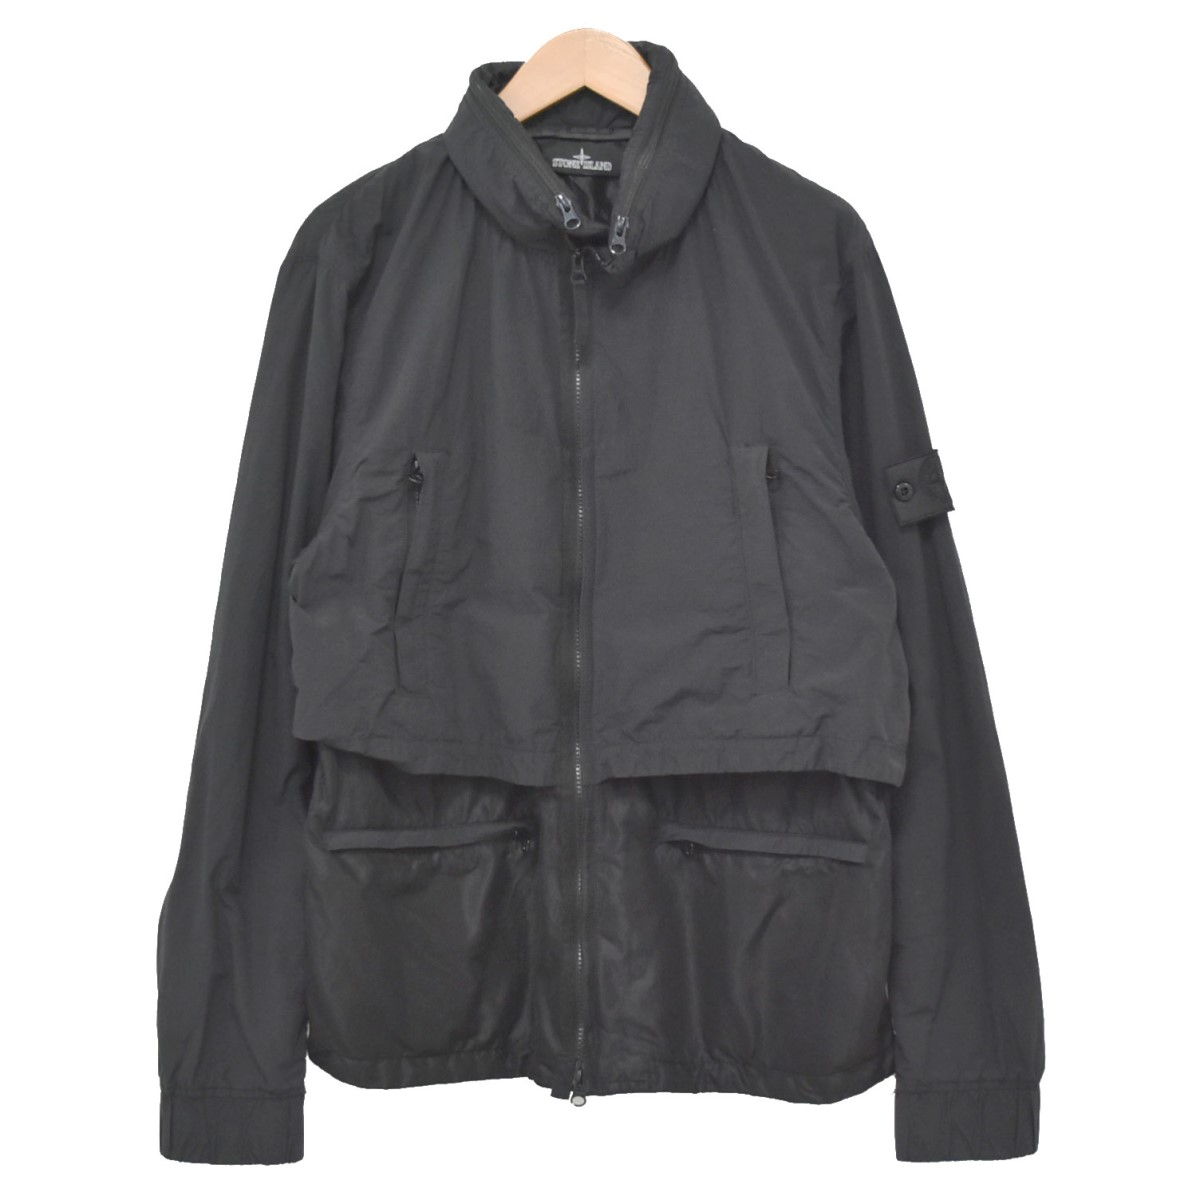 【中古】STONE ISLAND Shadow Project/Naslan Light Double Layer JK ブラック サイズ:XL 【060520】(ストーンアイランド)